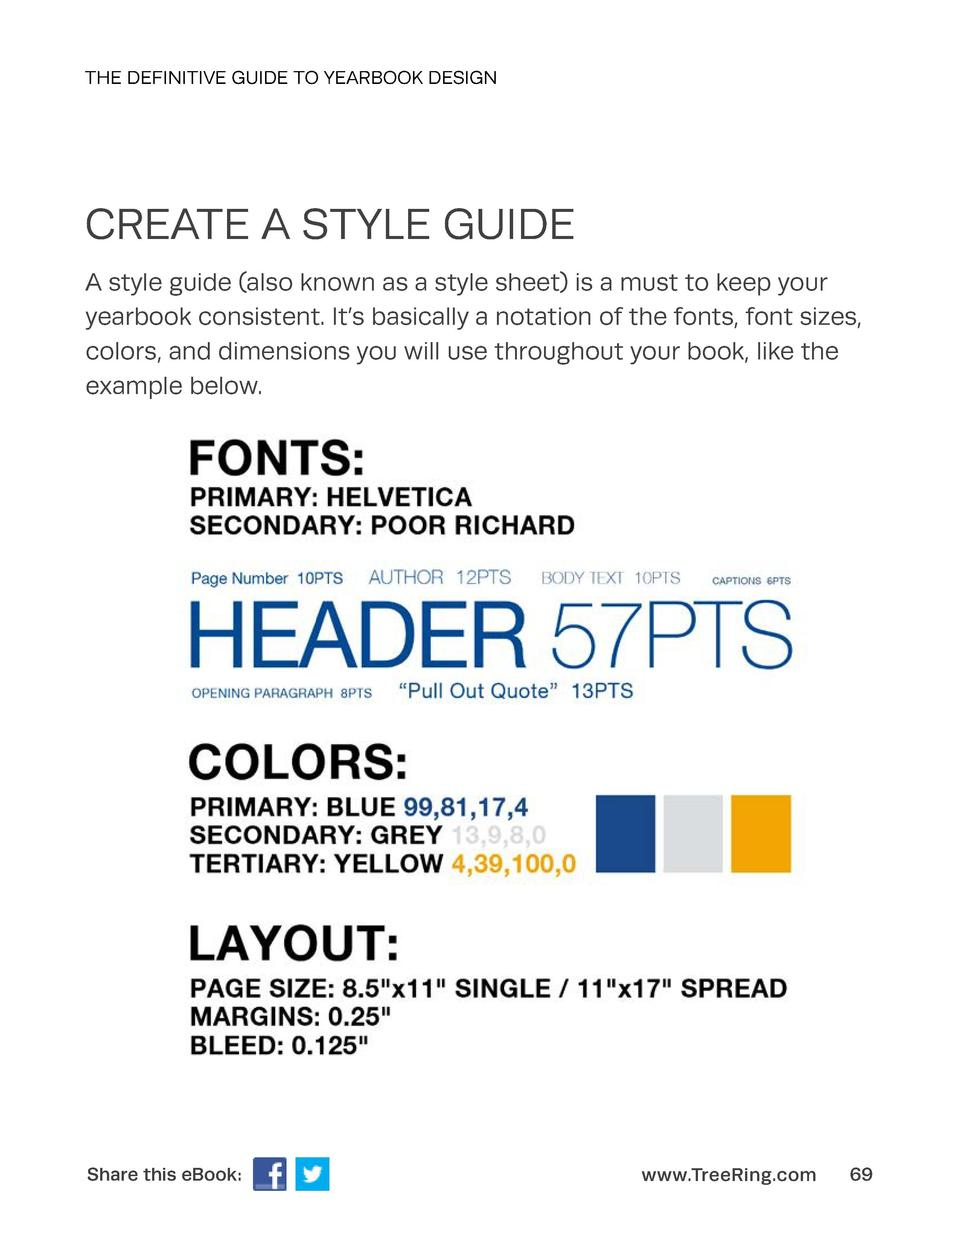 THE DEFINITIVE GUIDE TO YEARBOOK DESIGN  CREATE A STYLE GUIDE A style guide  also known as a style sheet  is a must to kee...